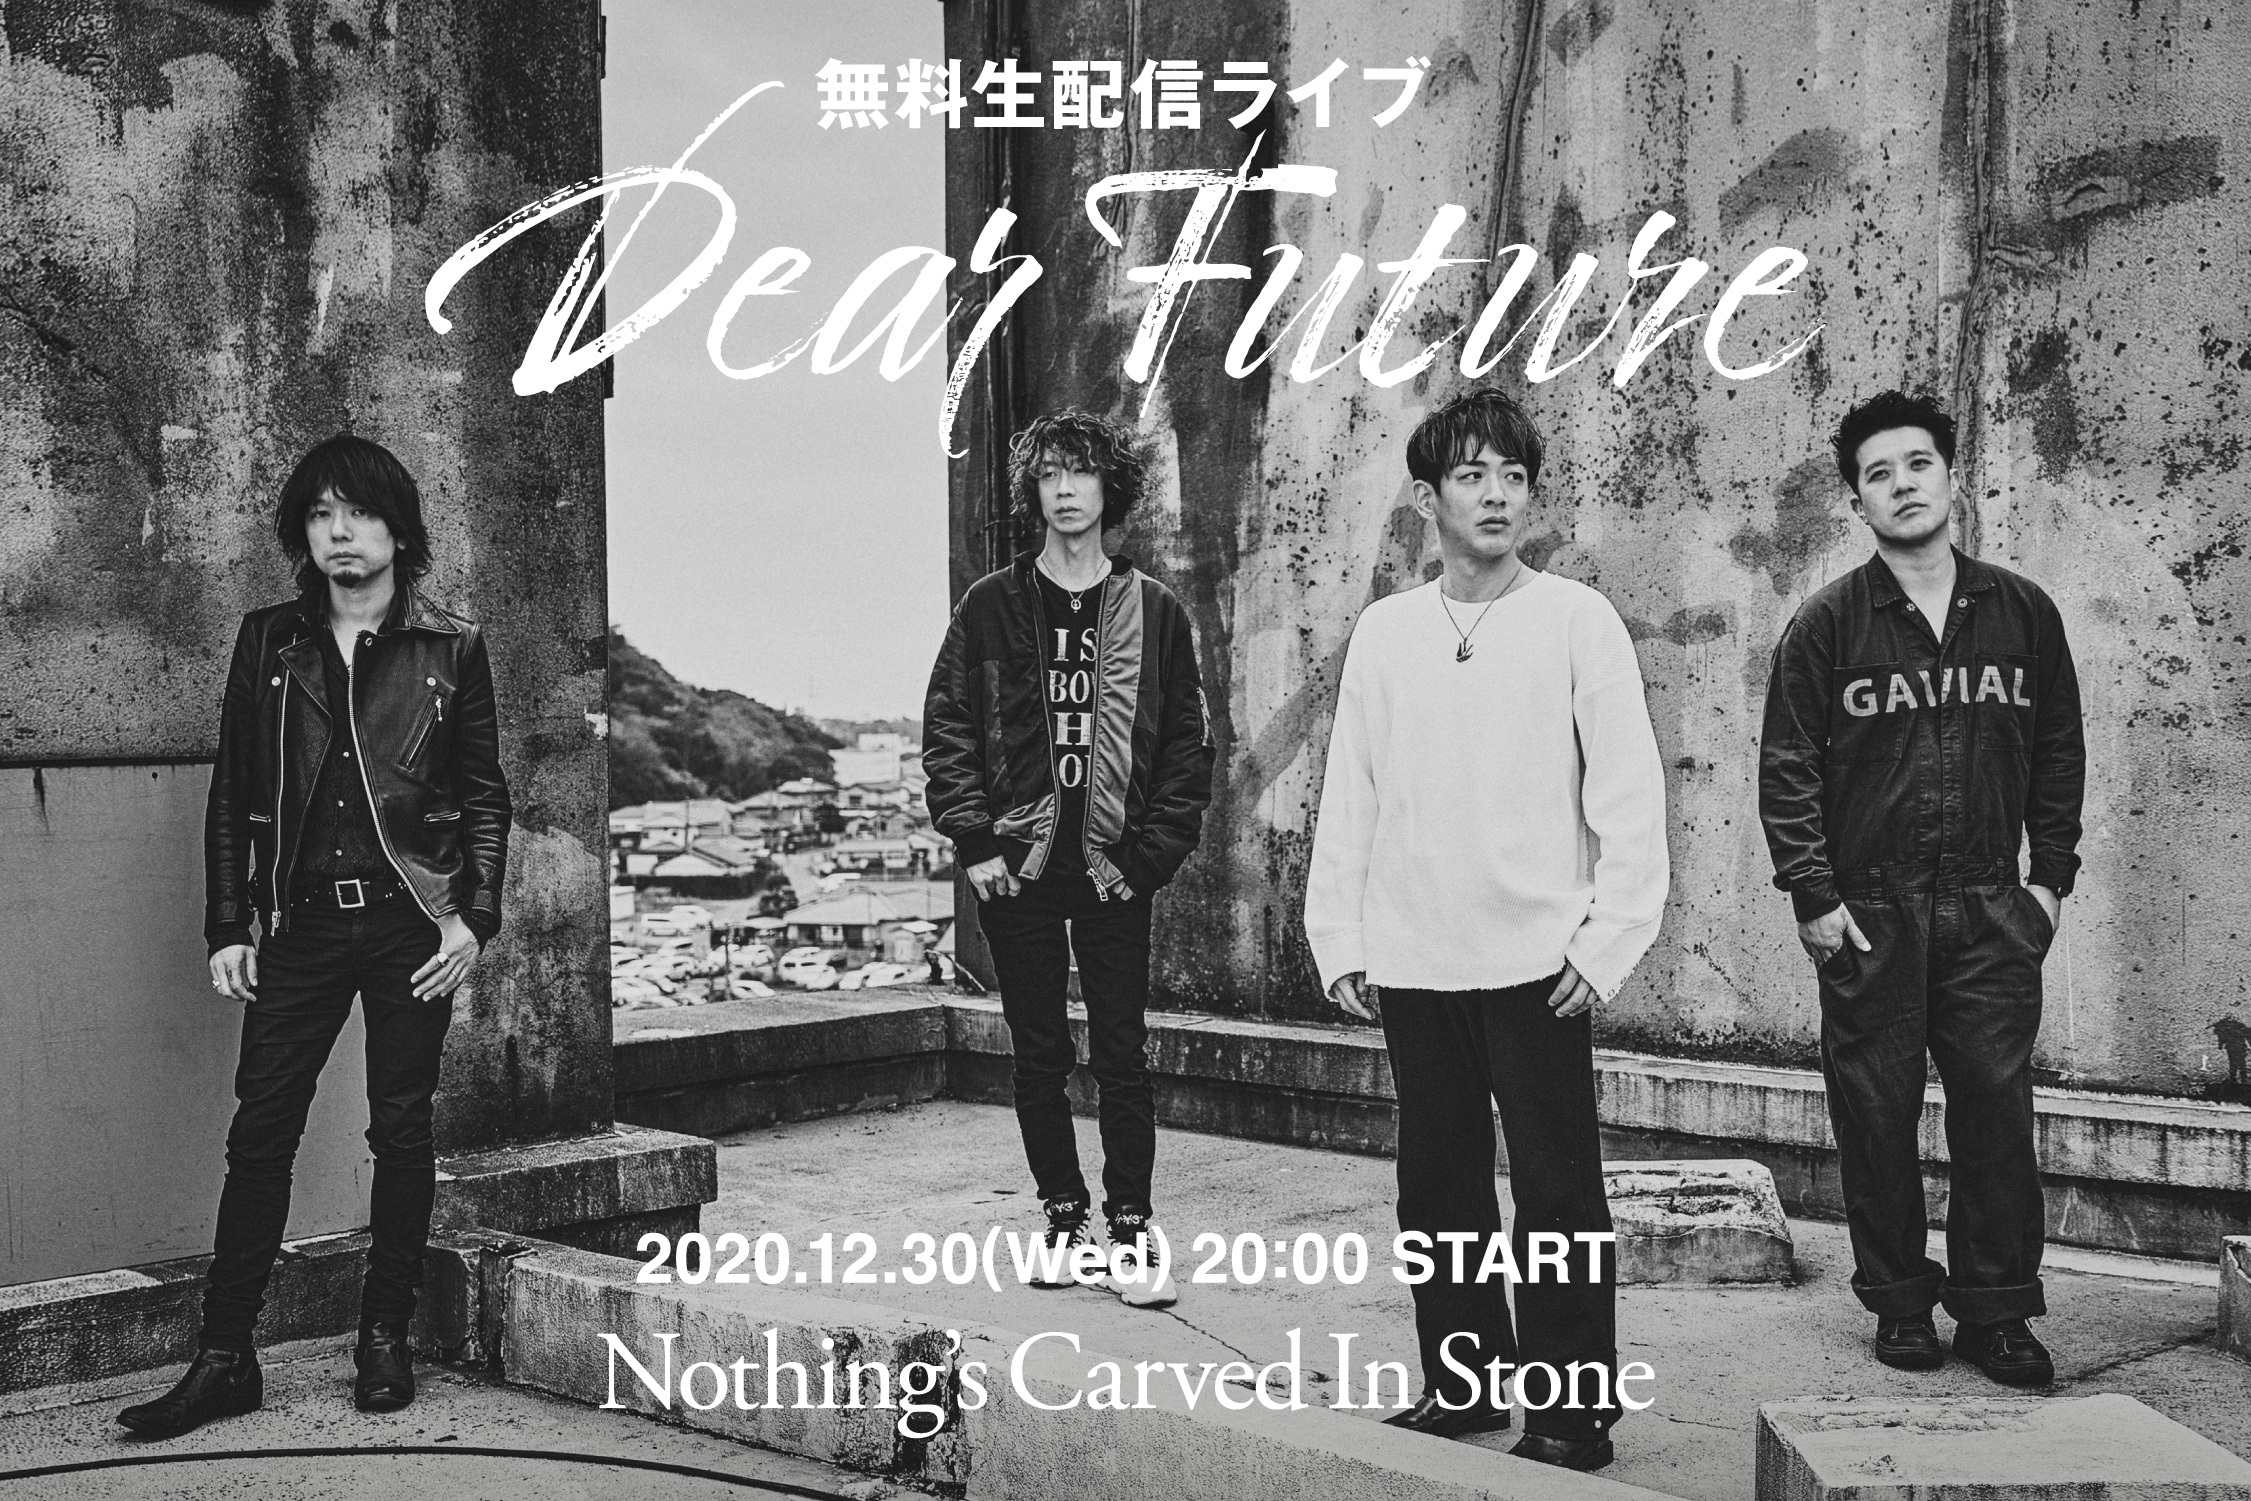 Nothing's Carved In Stone 無料生配信ライブ告知